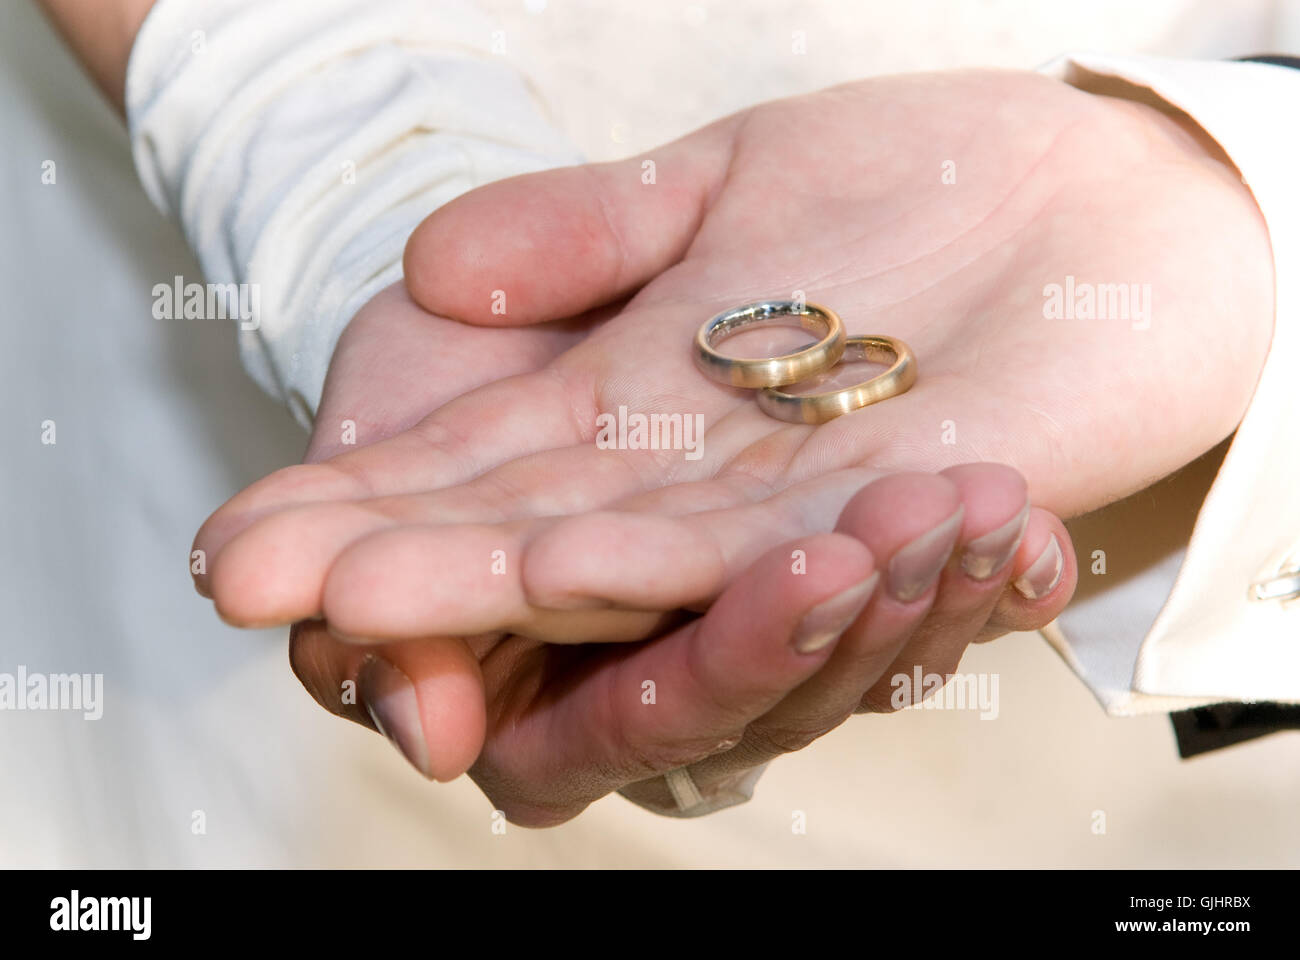 Party Rings Stock Photos & Party Rings Stock Images - Alamy